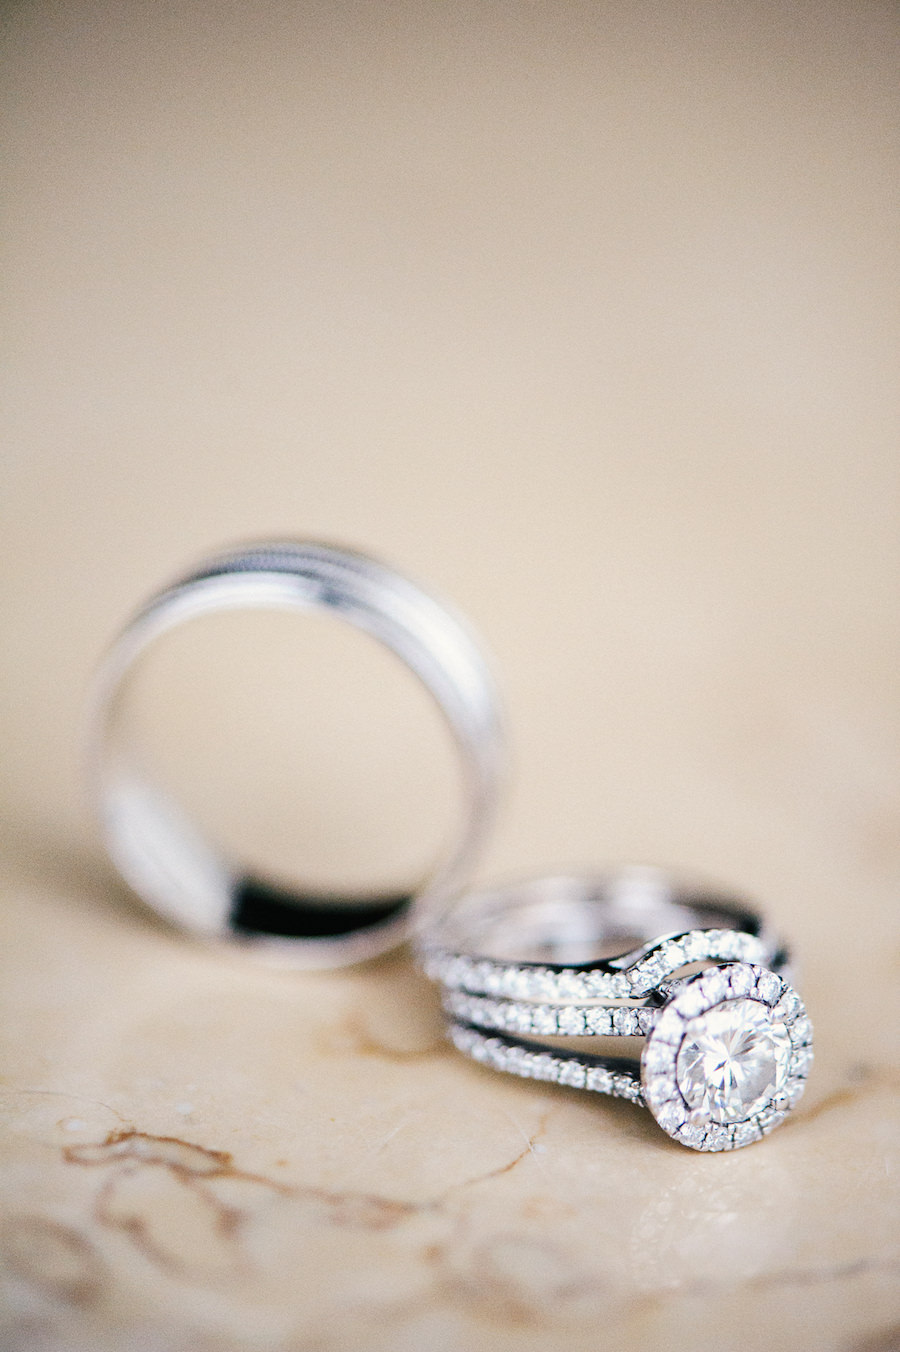 Bridal Wedding Band and Princess Cut Engagement Ring with Halo on Marble